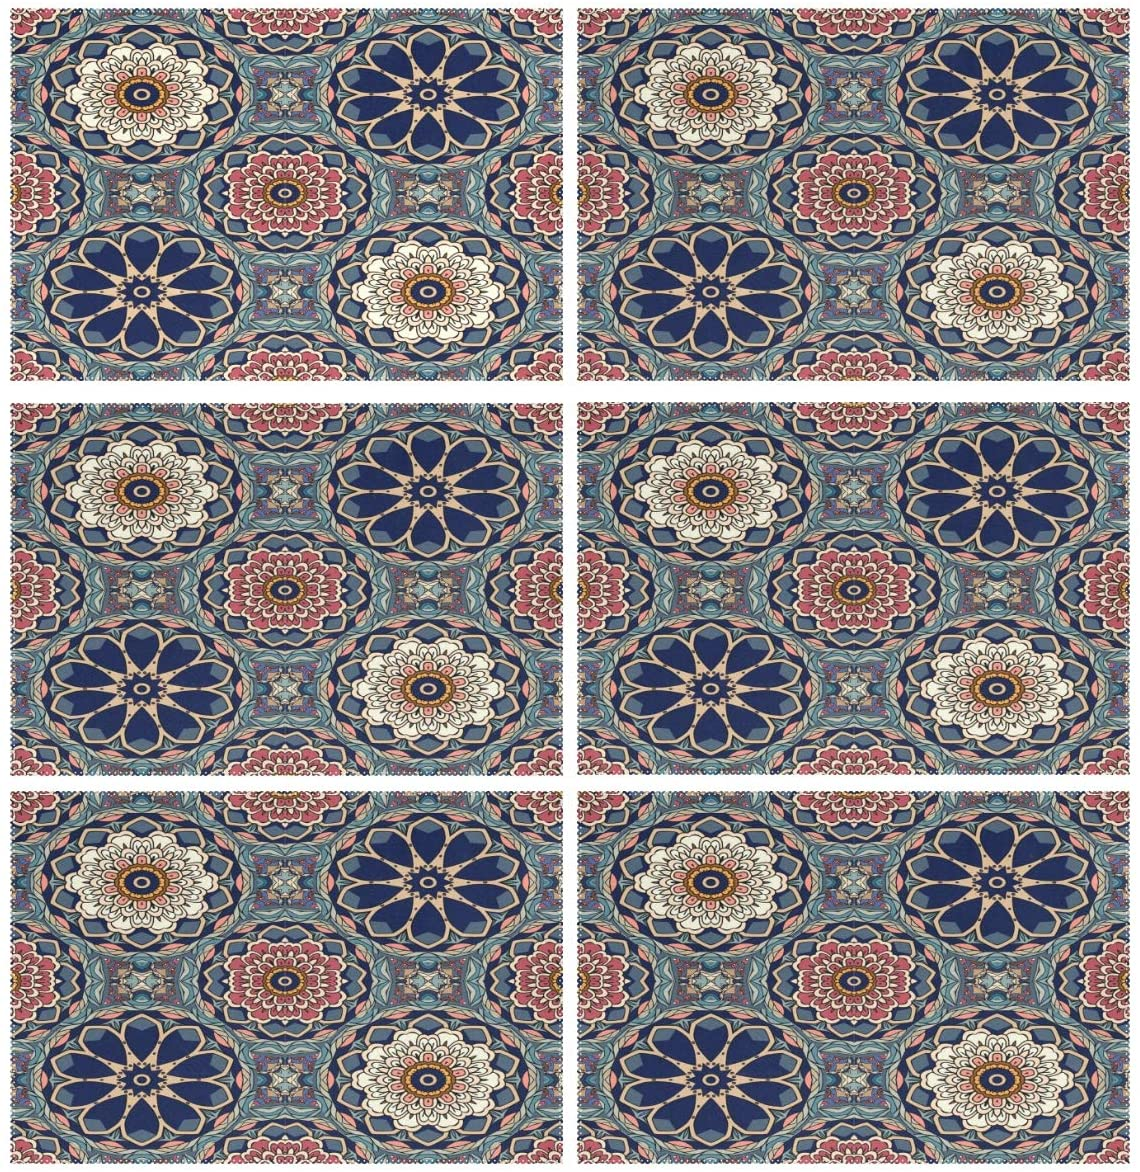 ALAZA Indian Bright Stylized Lotus and Flowers Mandalas Placemats Set of 6 for Kitchen Dinning Table Place Mat Heat Resistant Washable Polyester Plate Mat